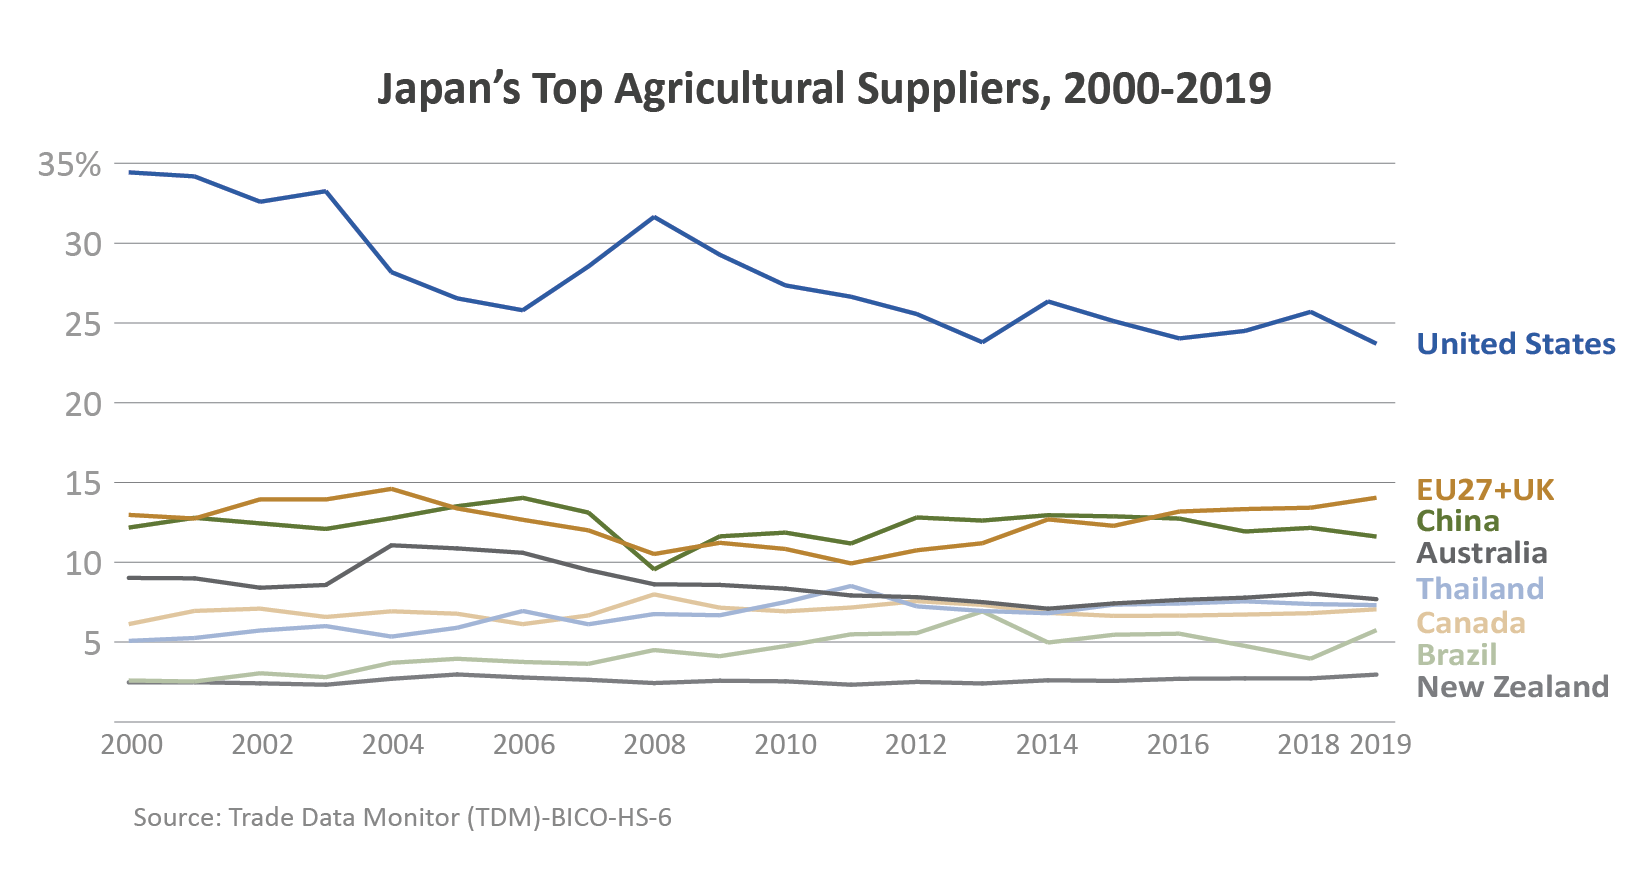 Line graph showing Japan's top agricultural suppliers from 2000 - 2019.  The United States is the top supplier.